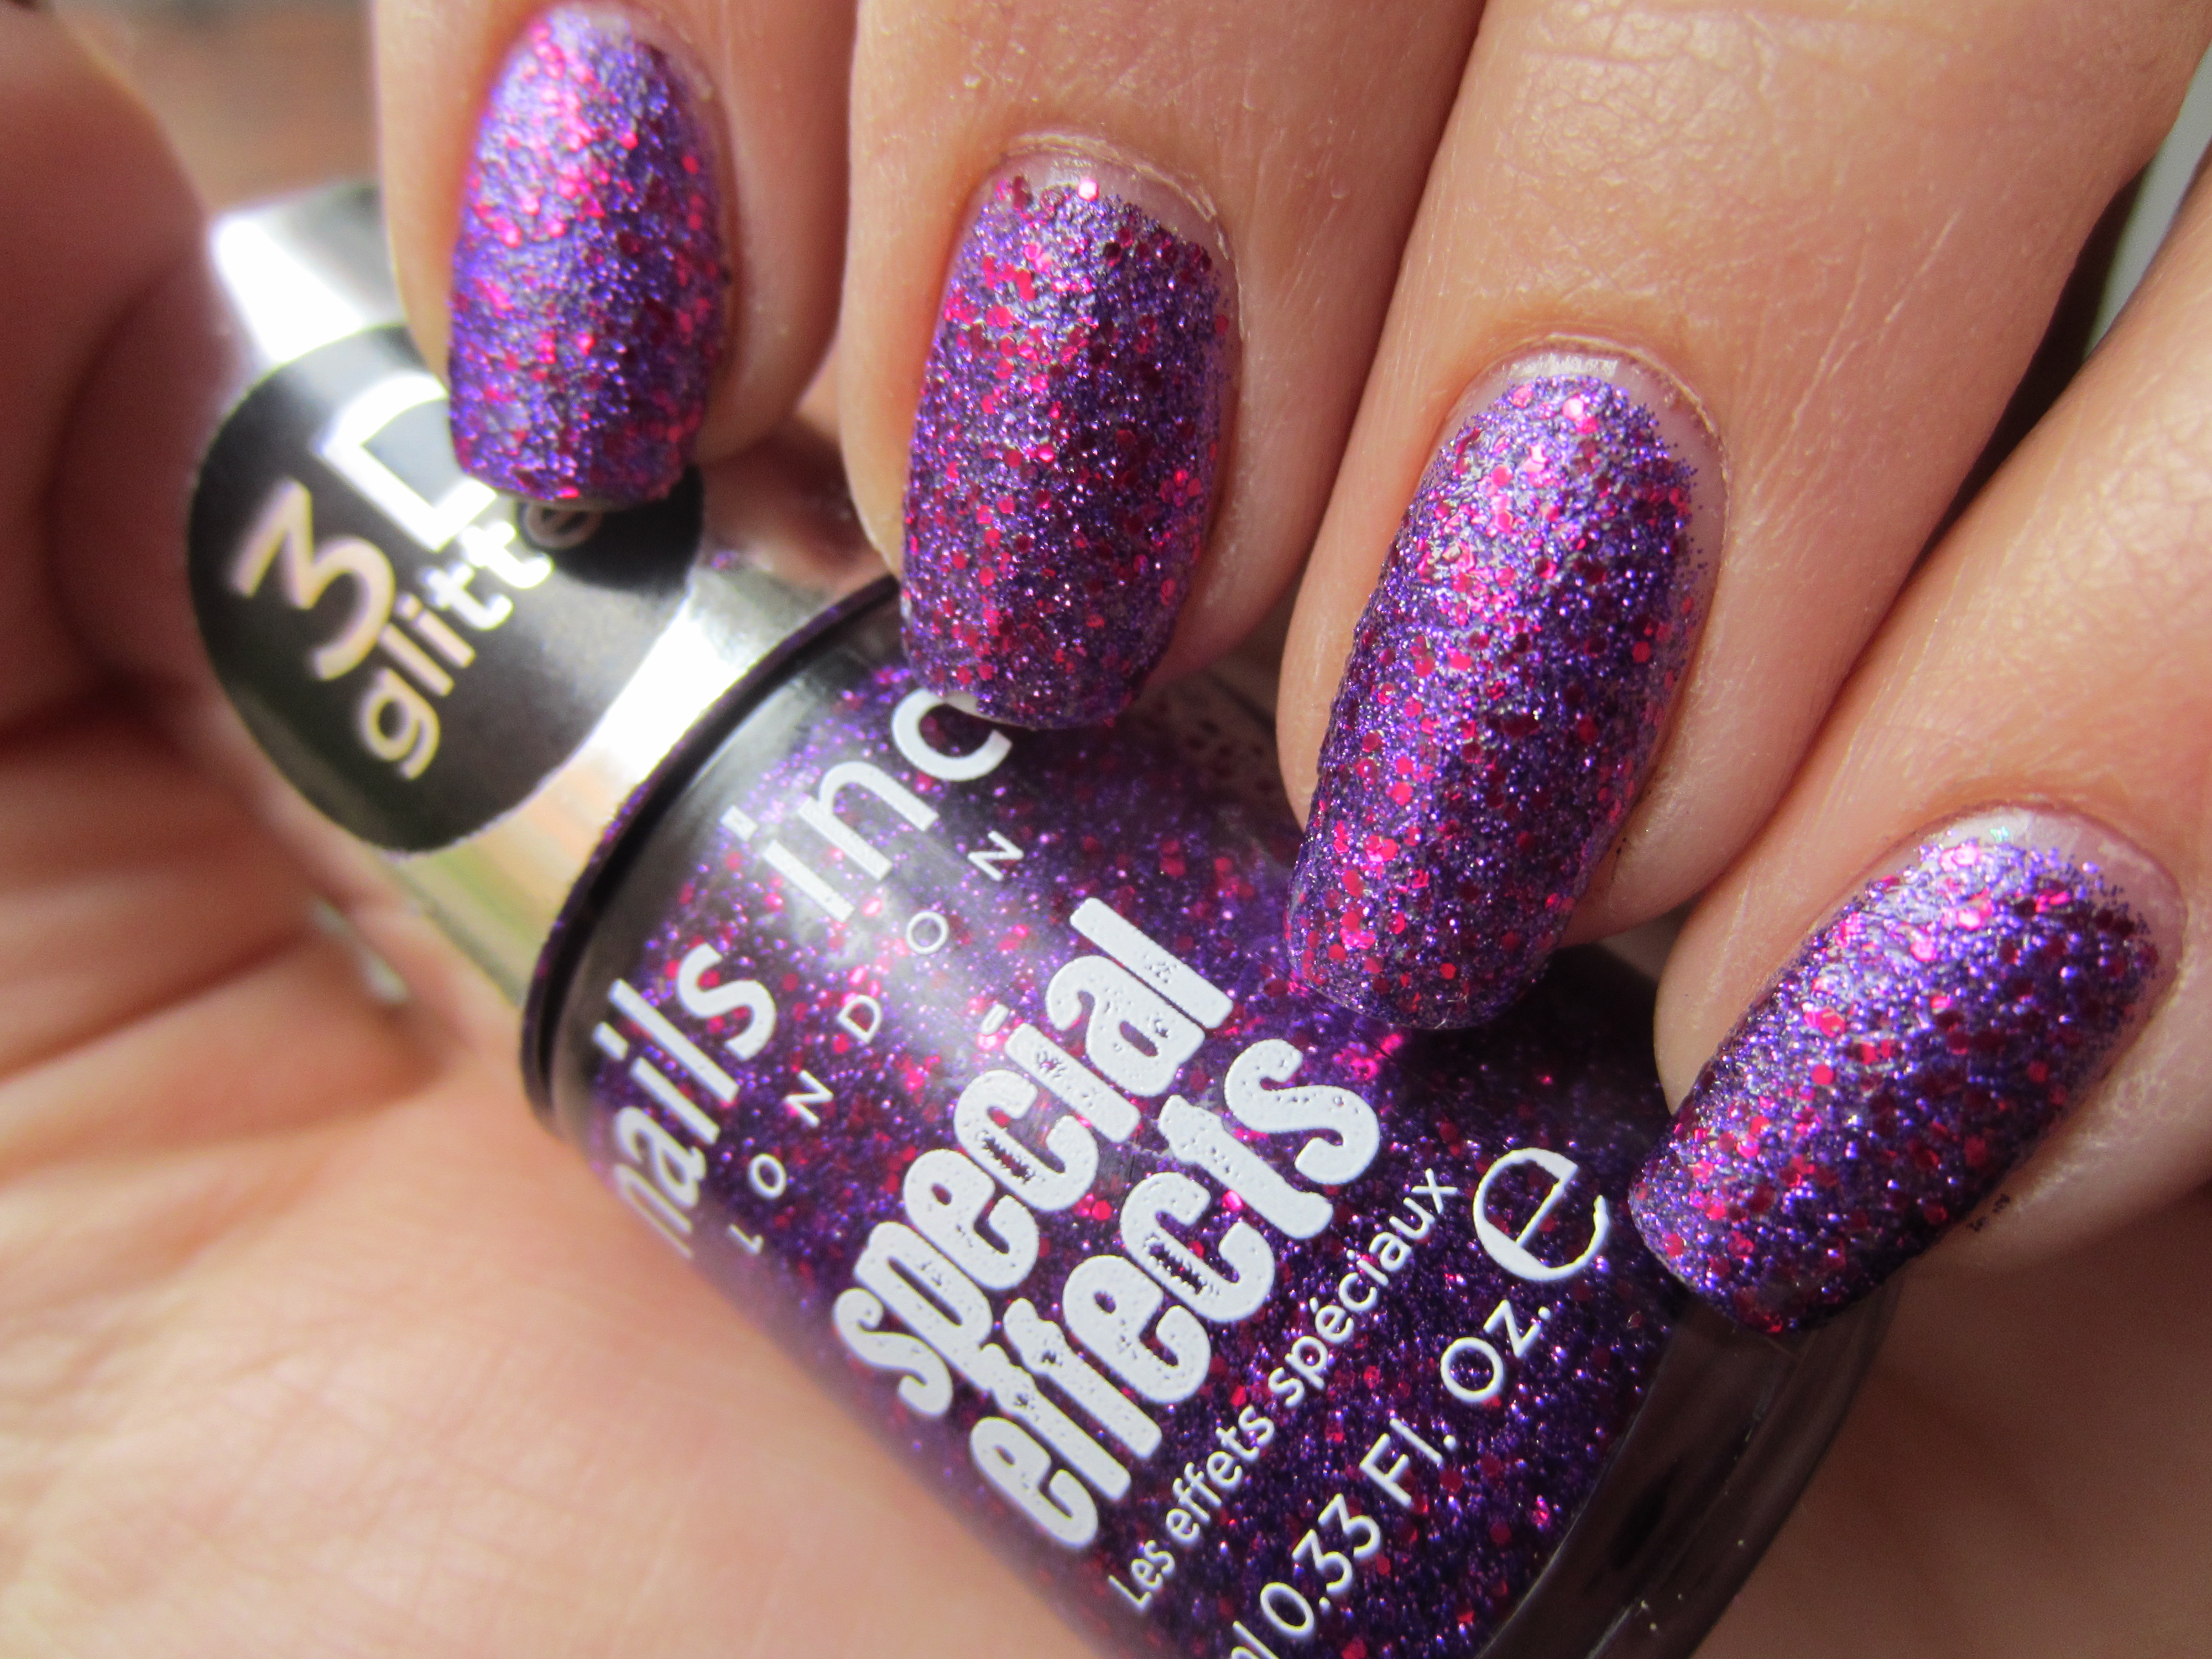 """Nails Inc. """"Bloomsbury Square"""" 